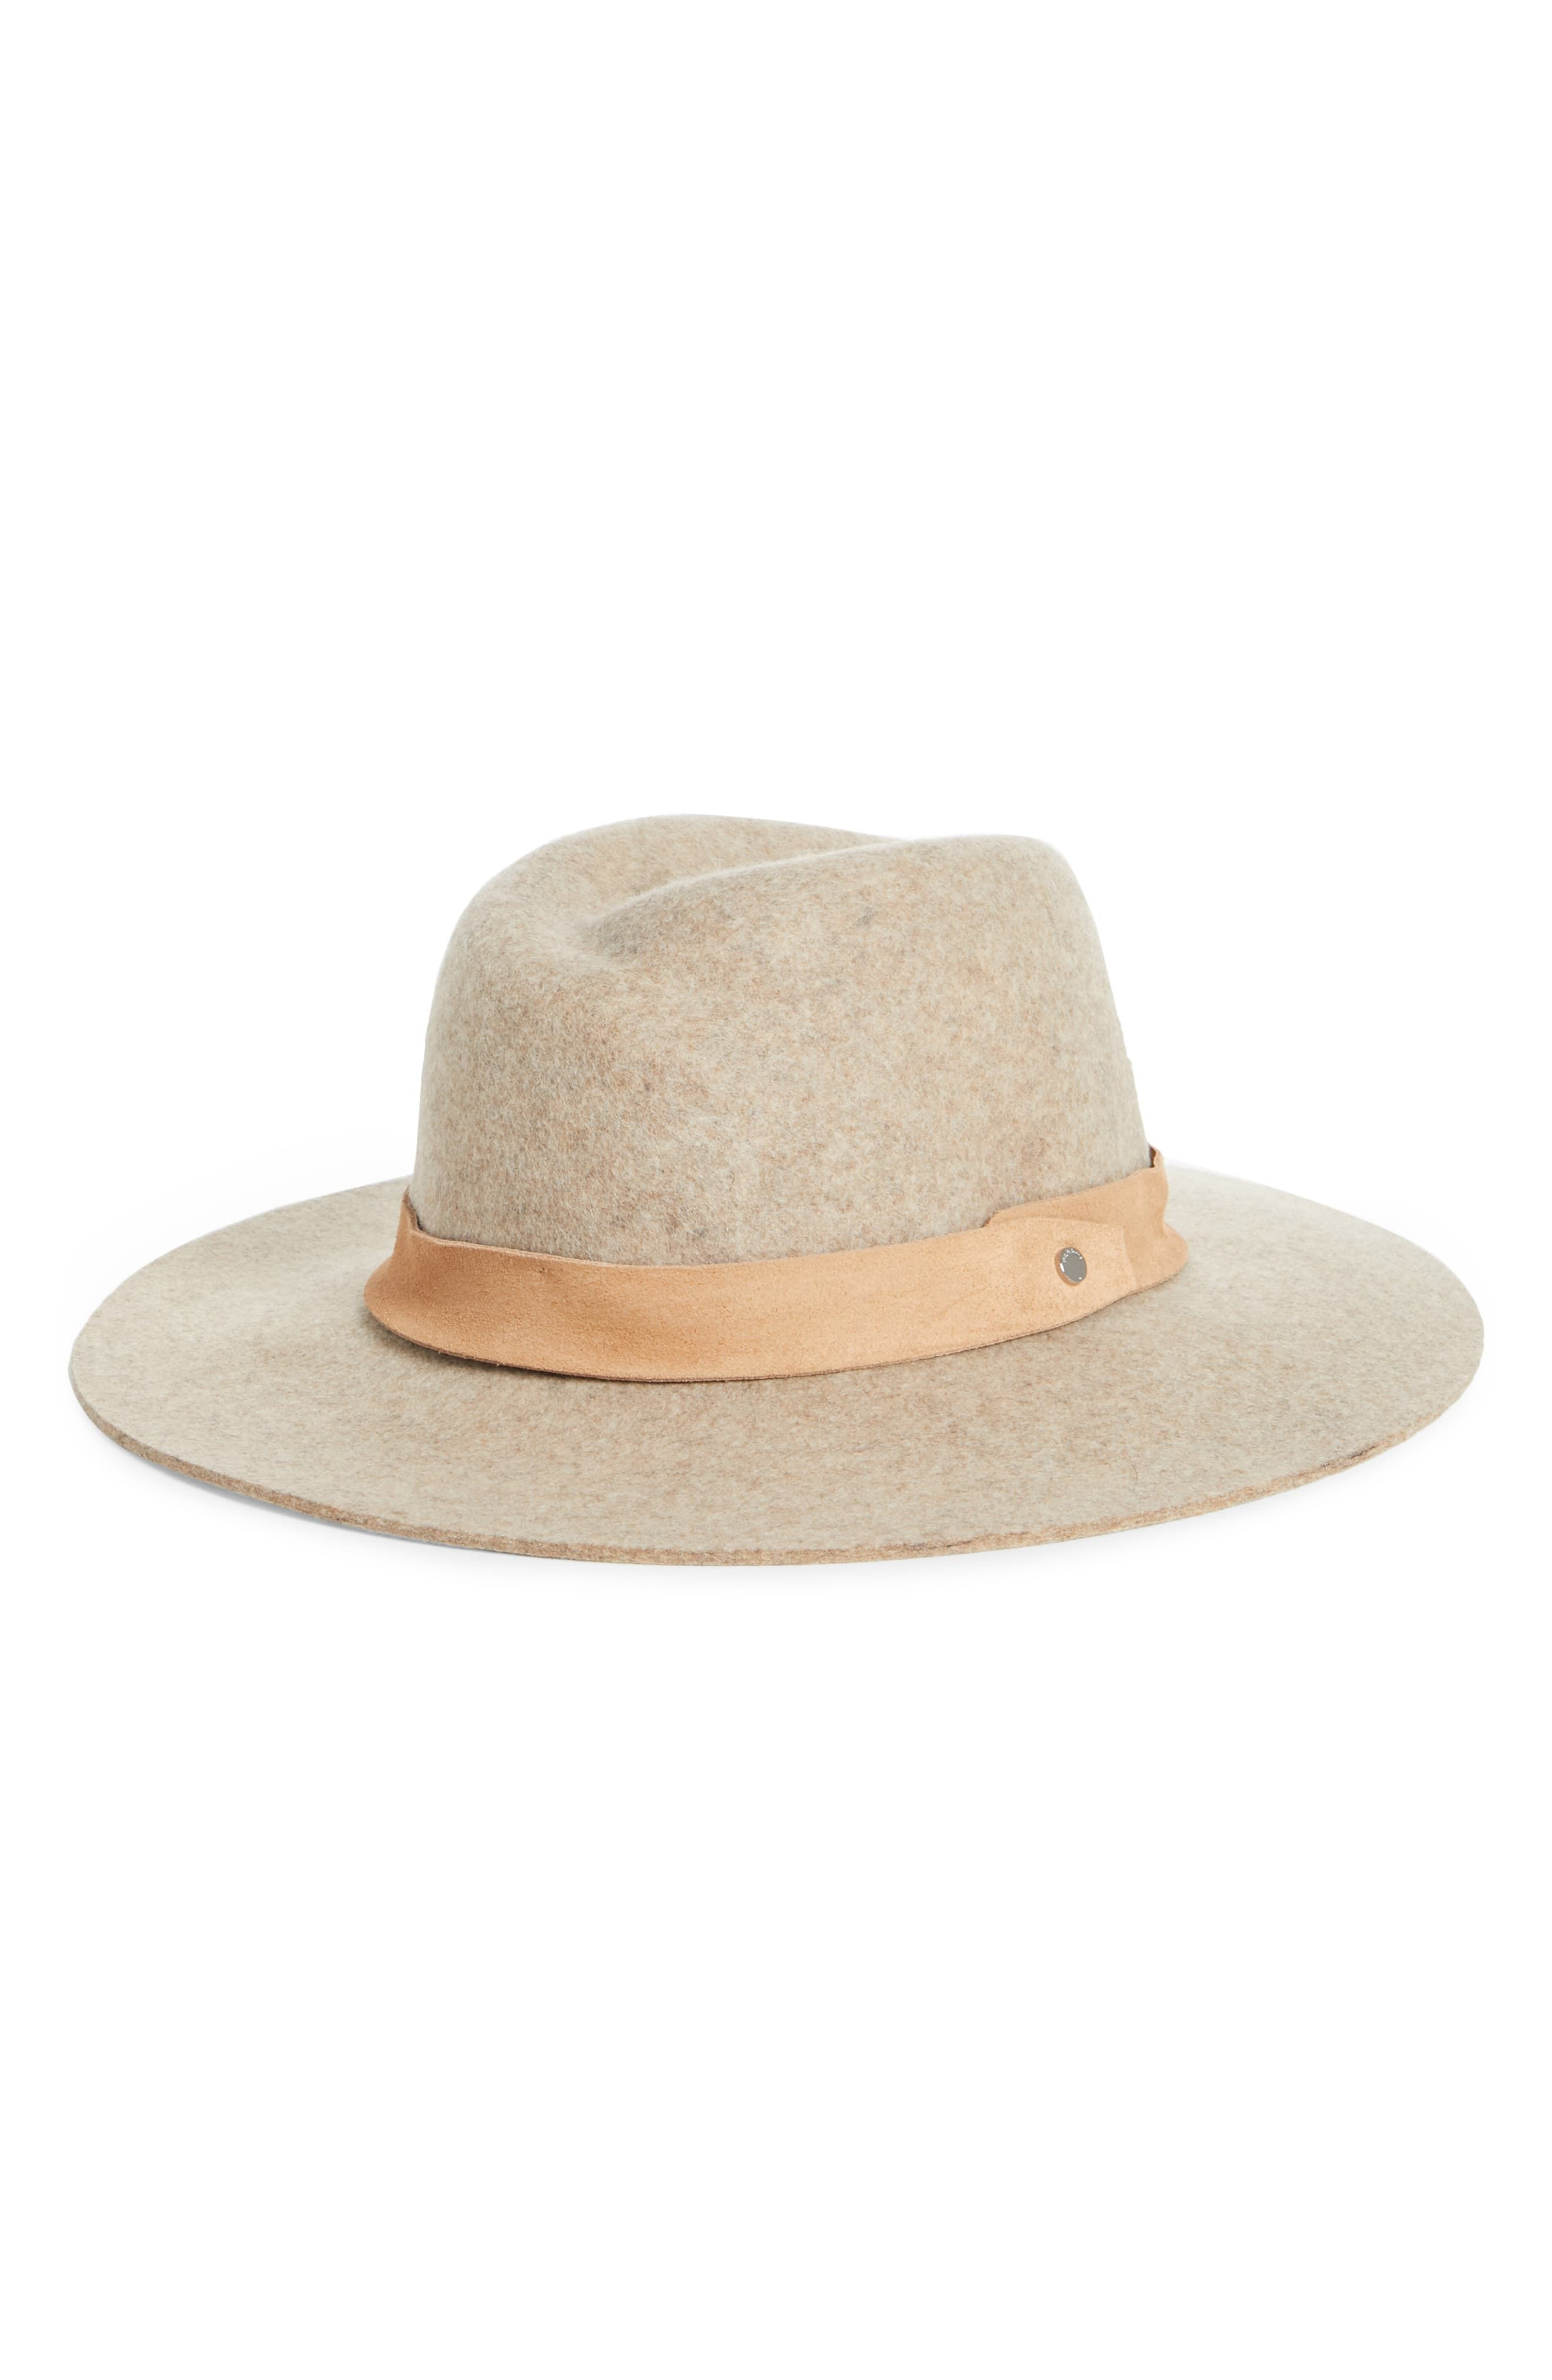 f0b28bd2240ba4 Rag & Bone Zoe Wool Fedora in 2019 | Products | Hats, Rag, bone, Wool